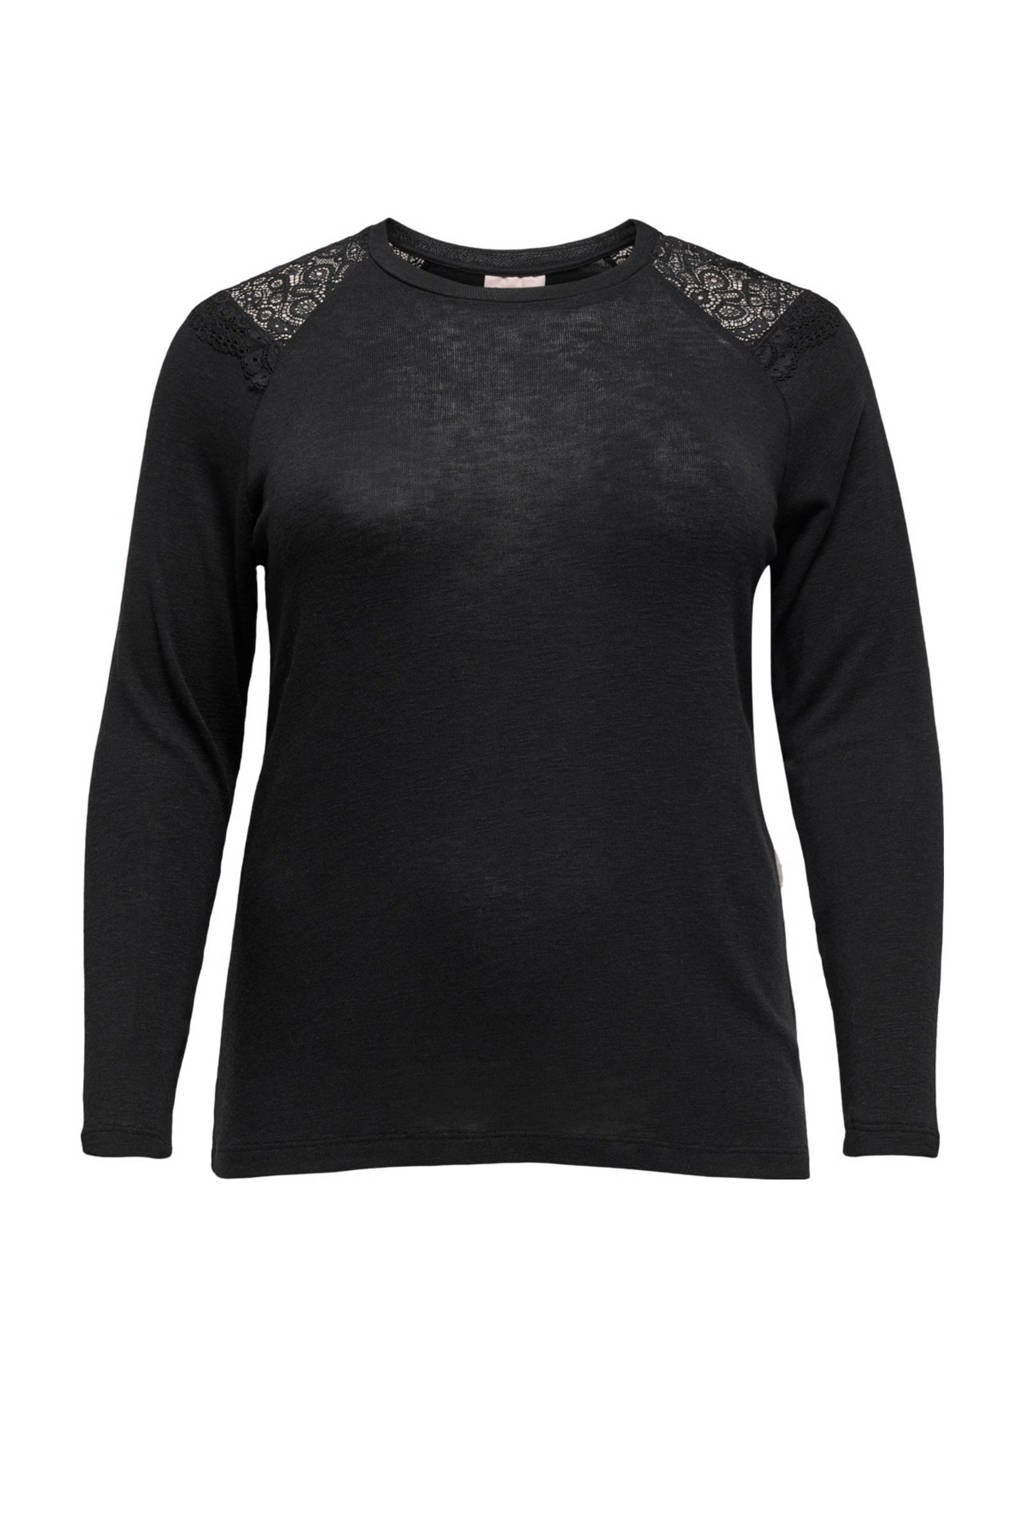 ONLY CARMAKOMA top CARHANNA met open detail antraciet, Antraciet